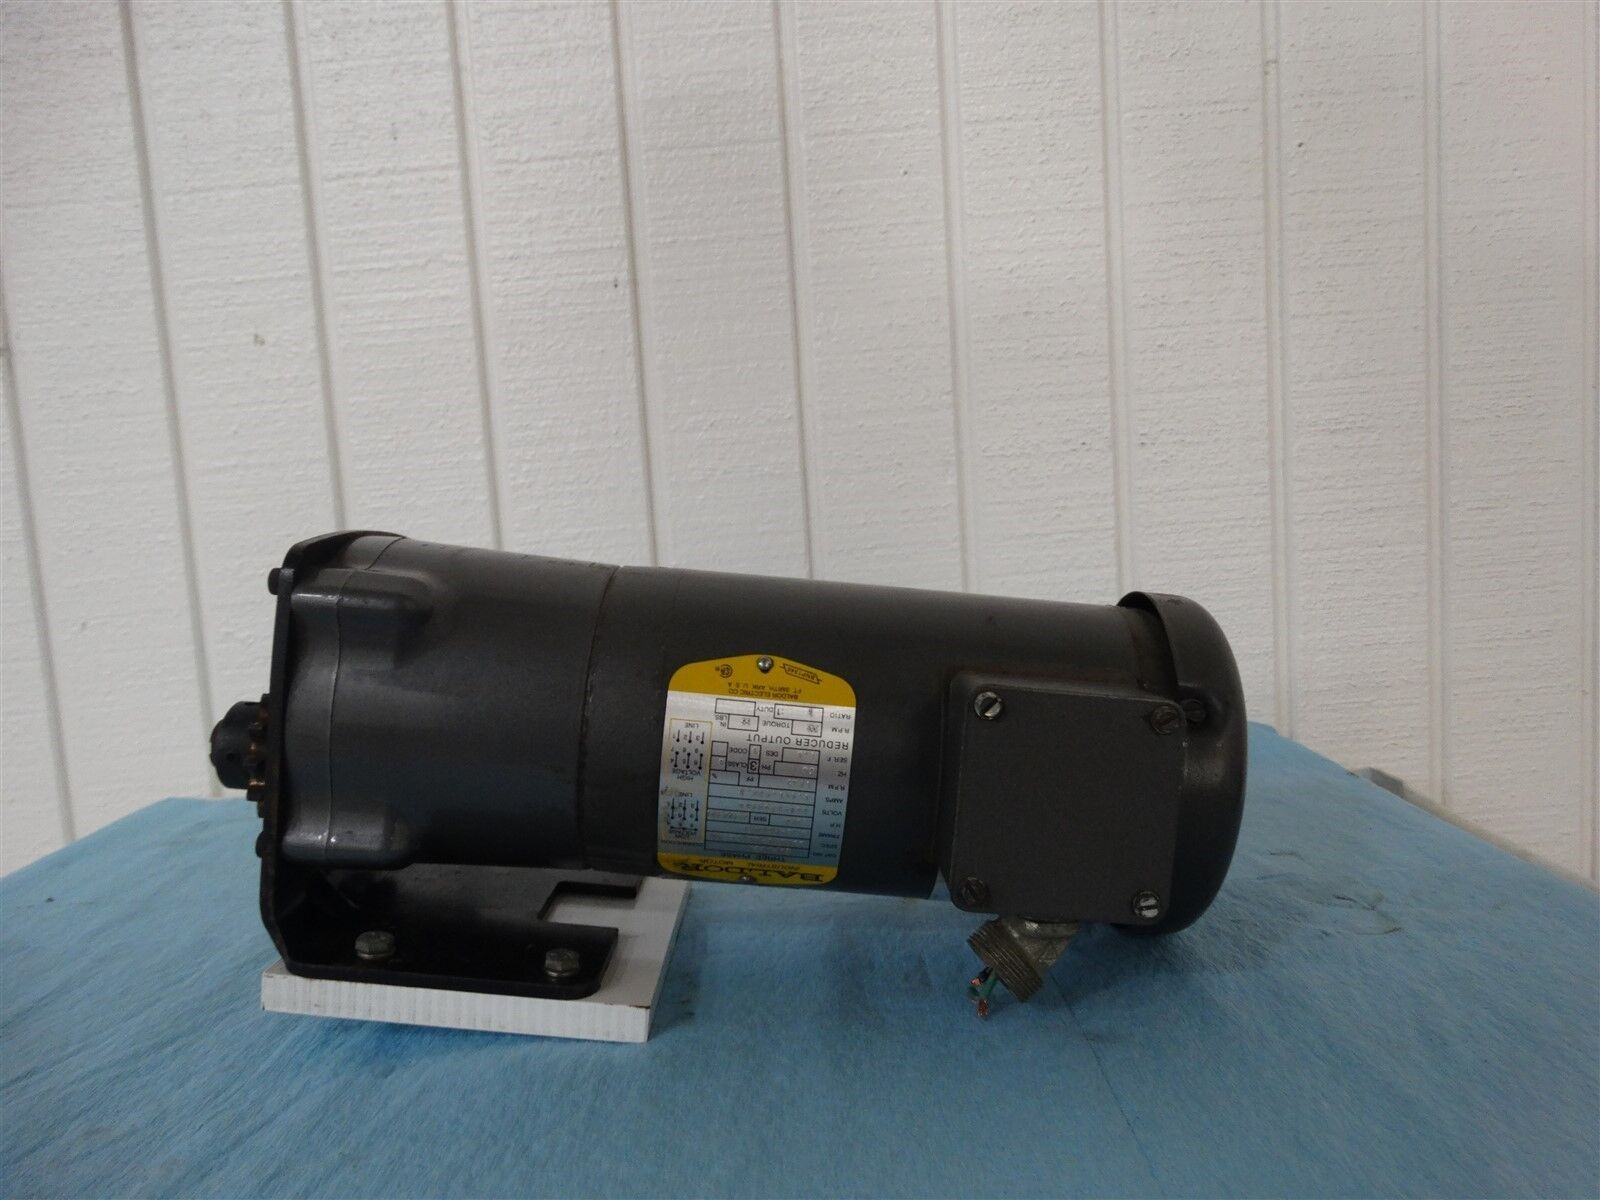 Baldor GMP3338 FR:320-PSLA-1 208-230/460V 3PH 5:1 1/3HP 60HZ 1.4-1.43/.1A 345RPM